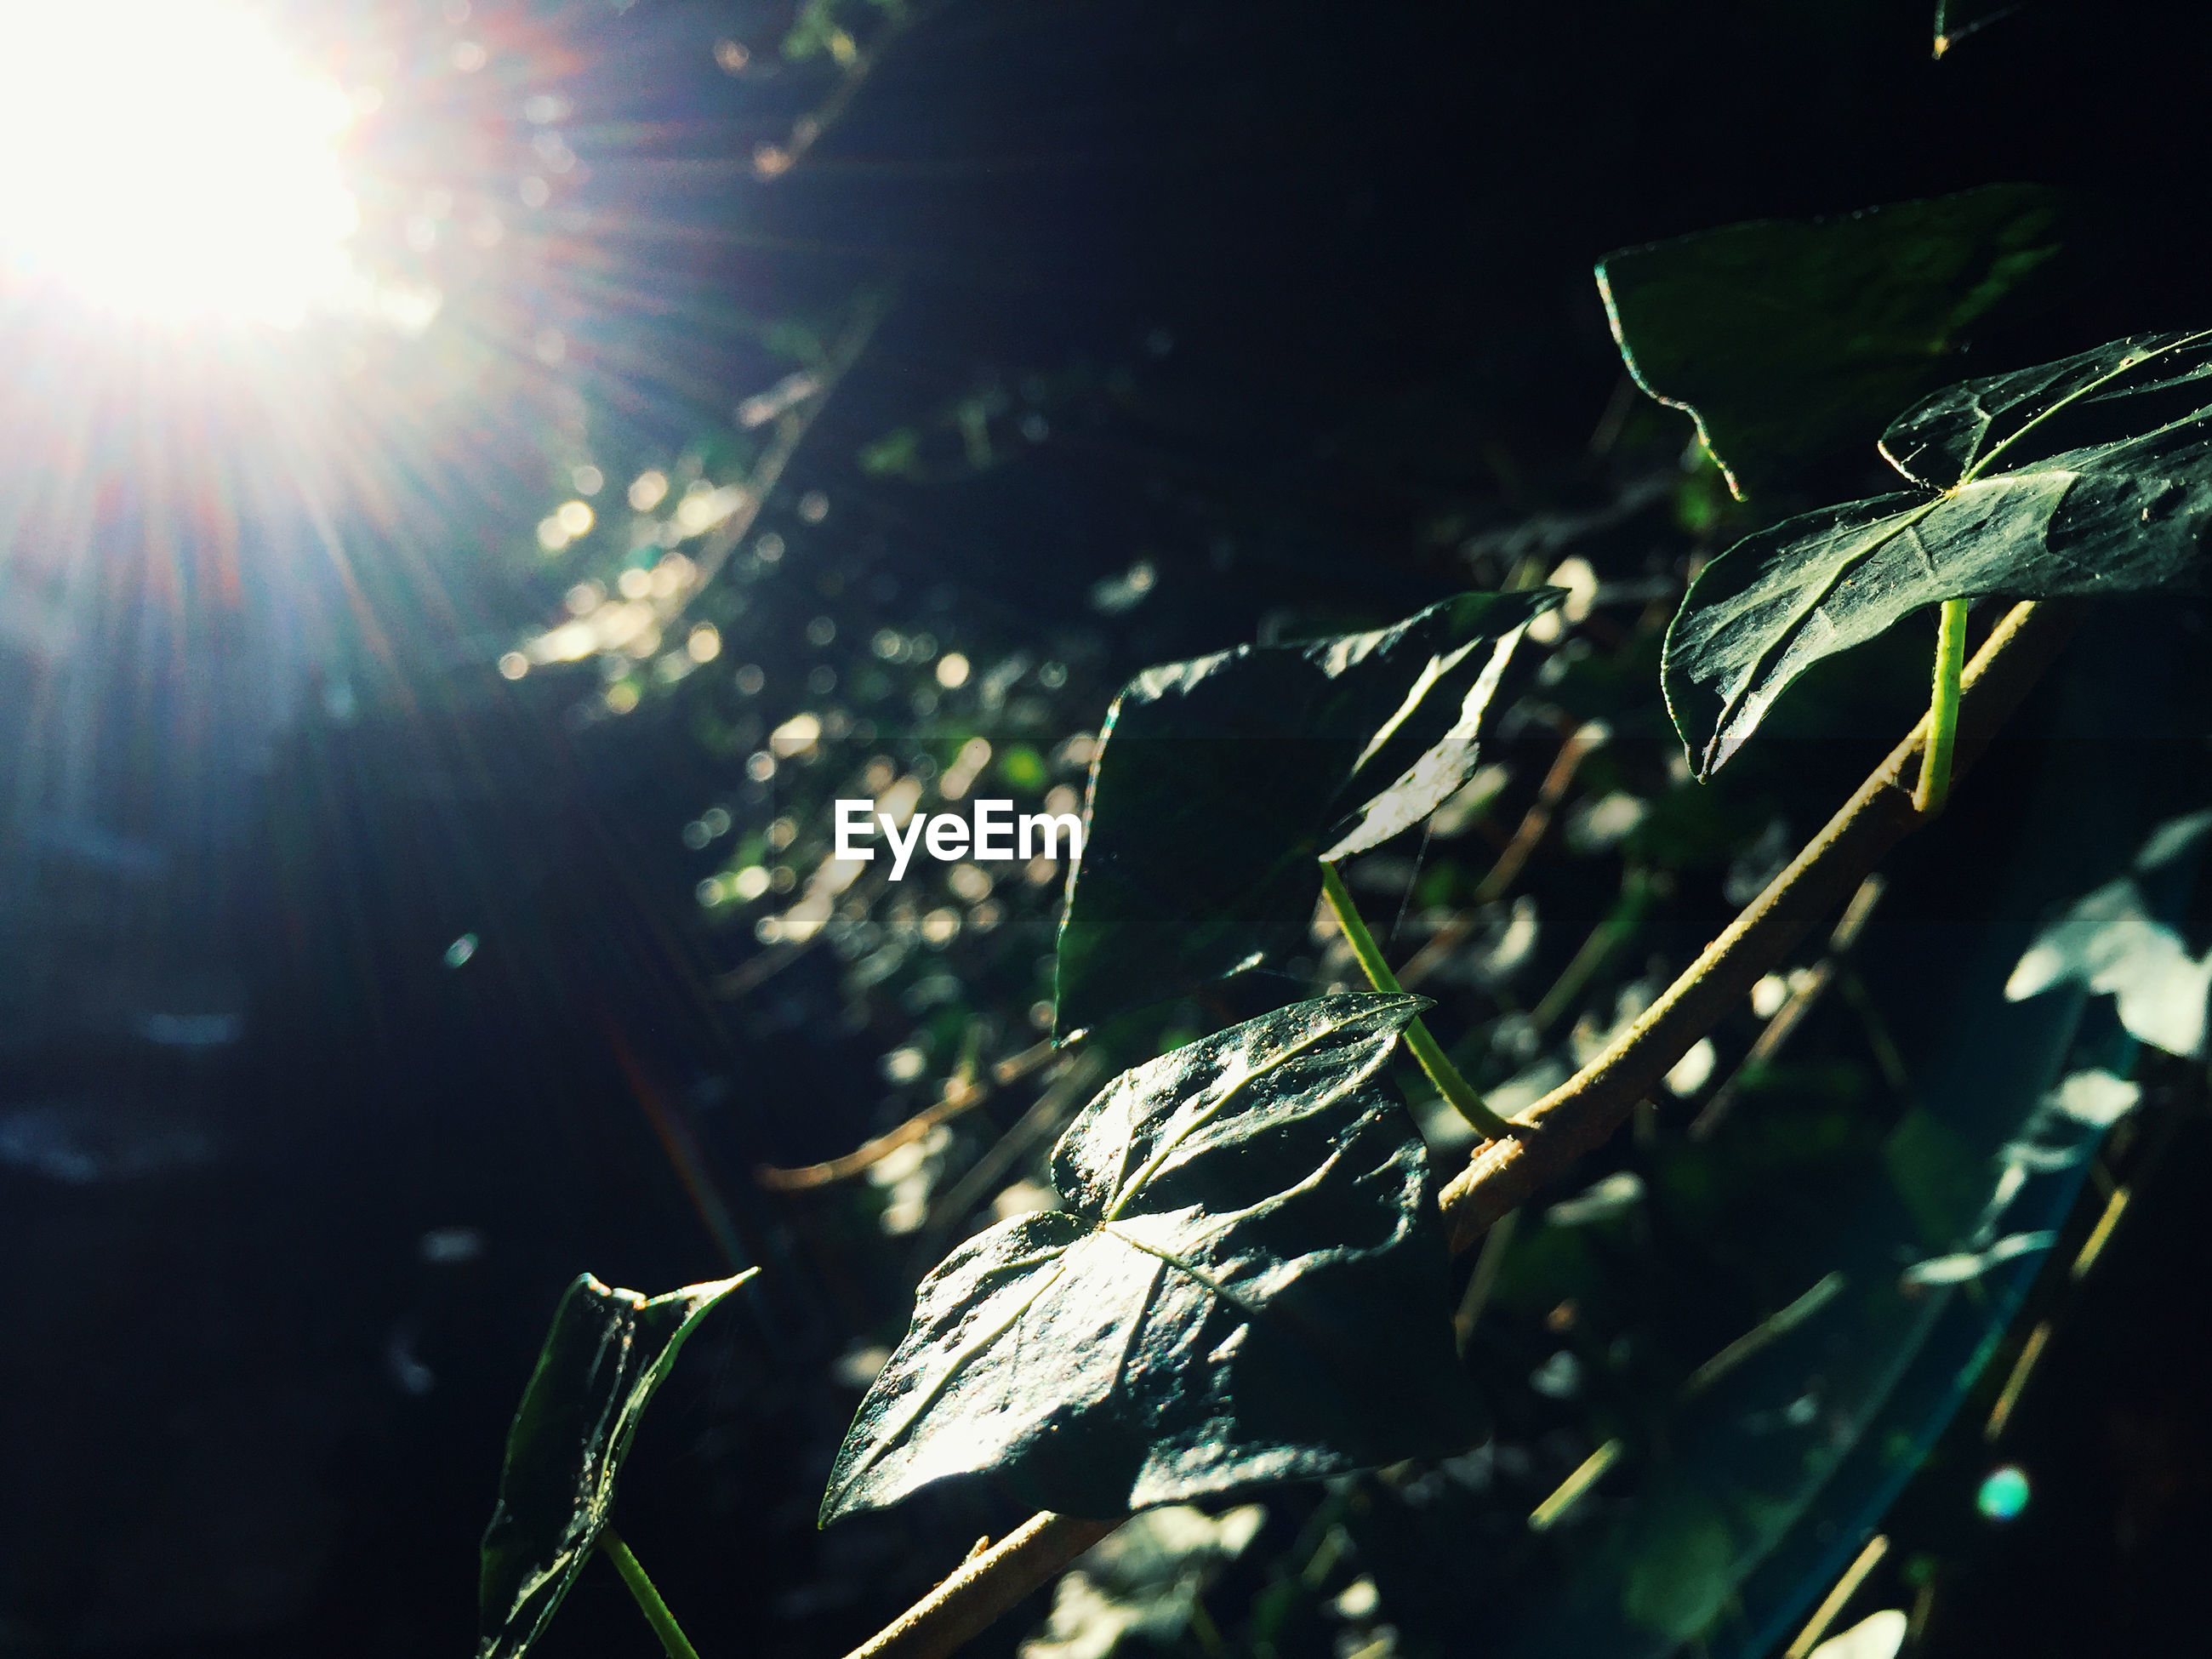 SUNLIGHT STREAMING THROUGH TREE LEAVES